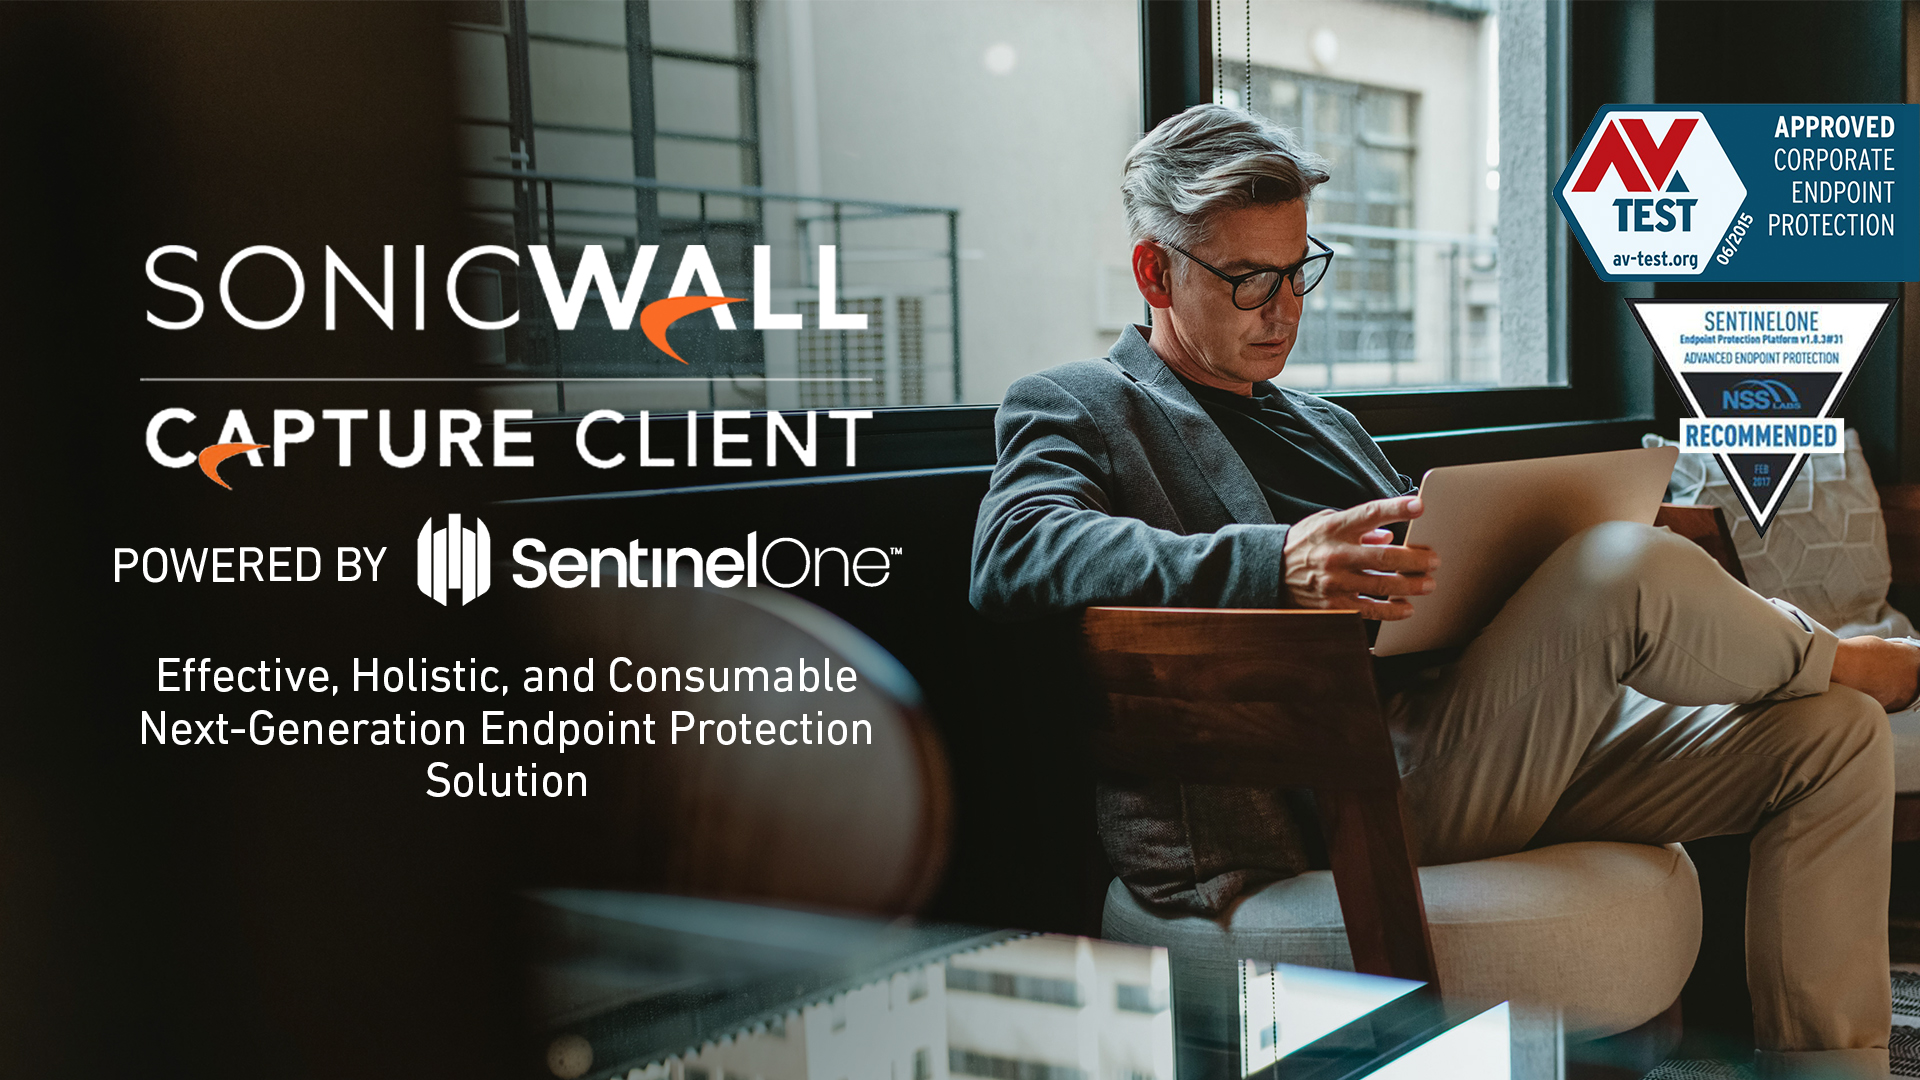 Sonicwall Capture Client powered by SentinelOne